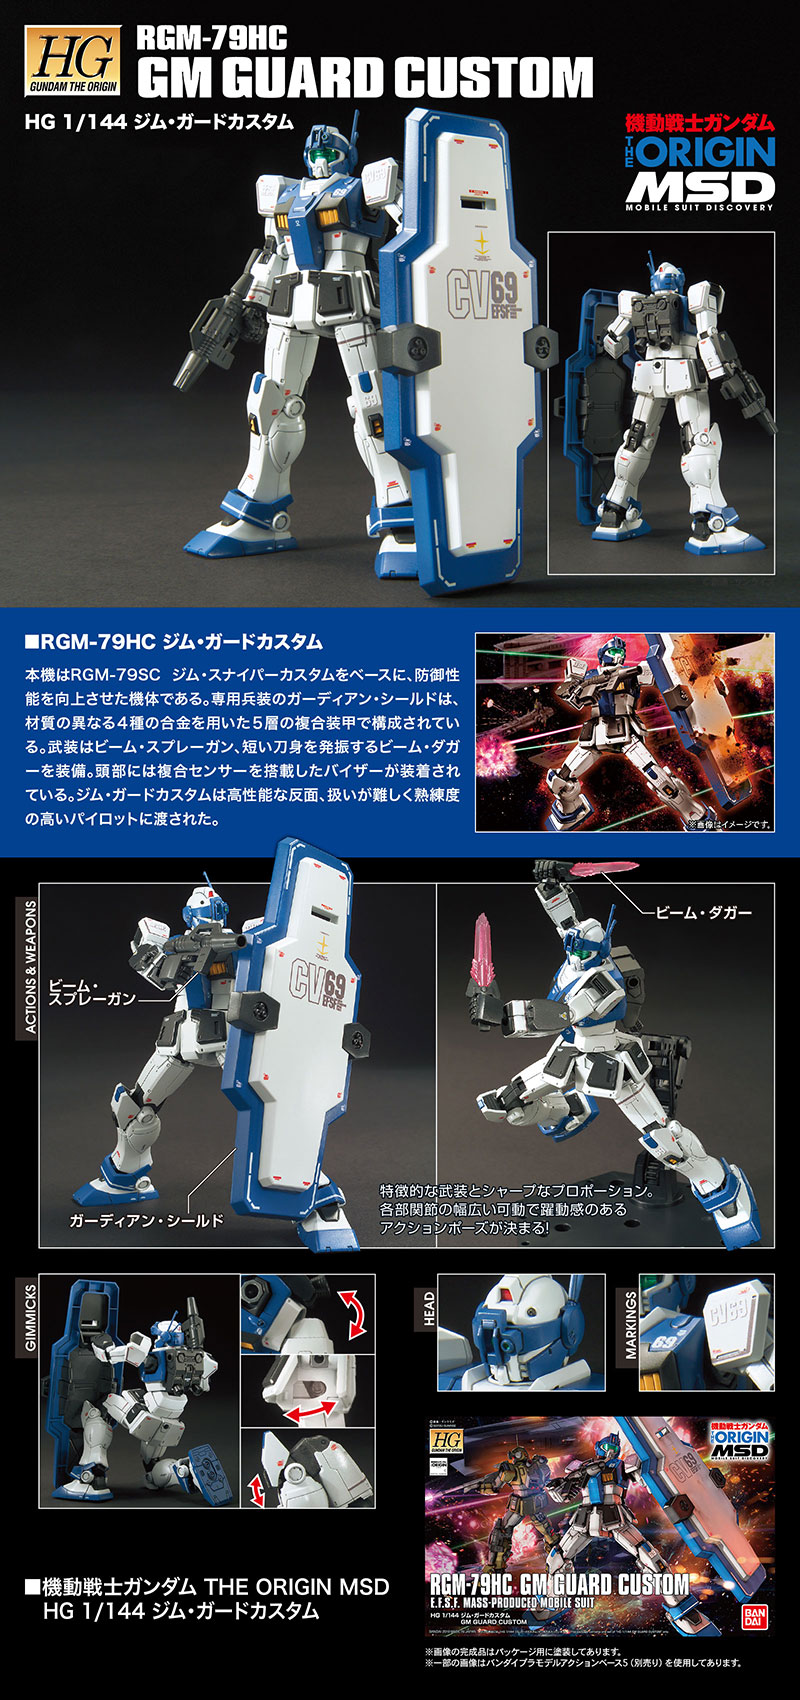 HG GM Guard Custom Description